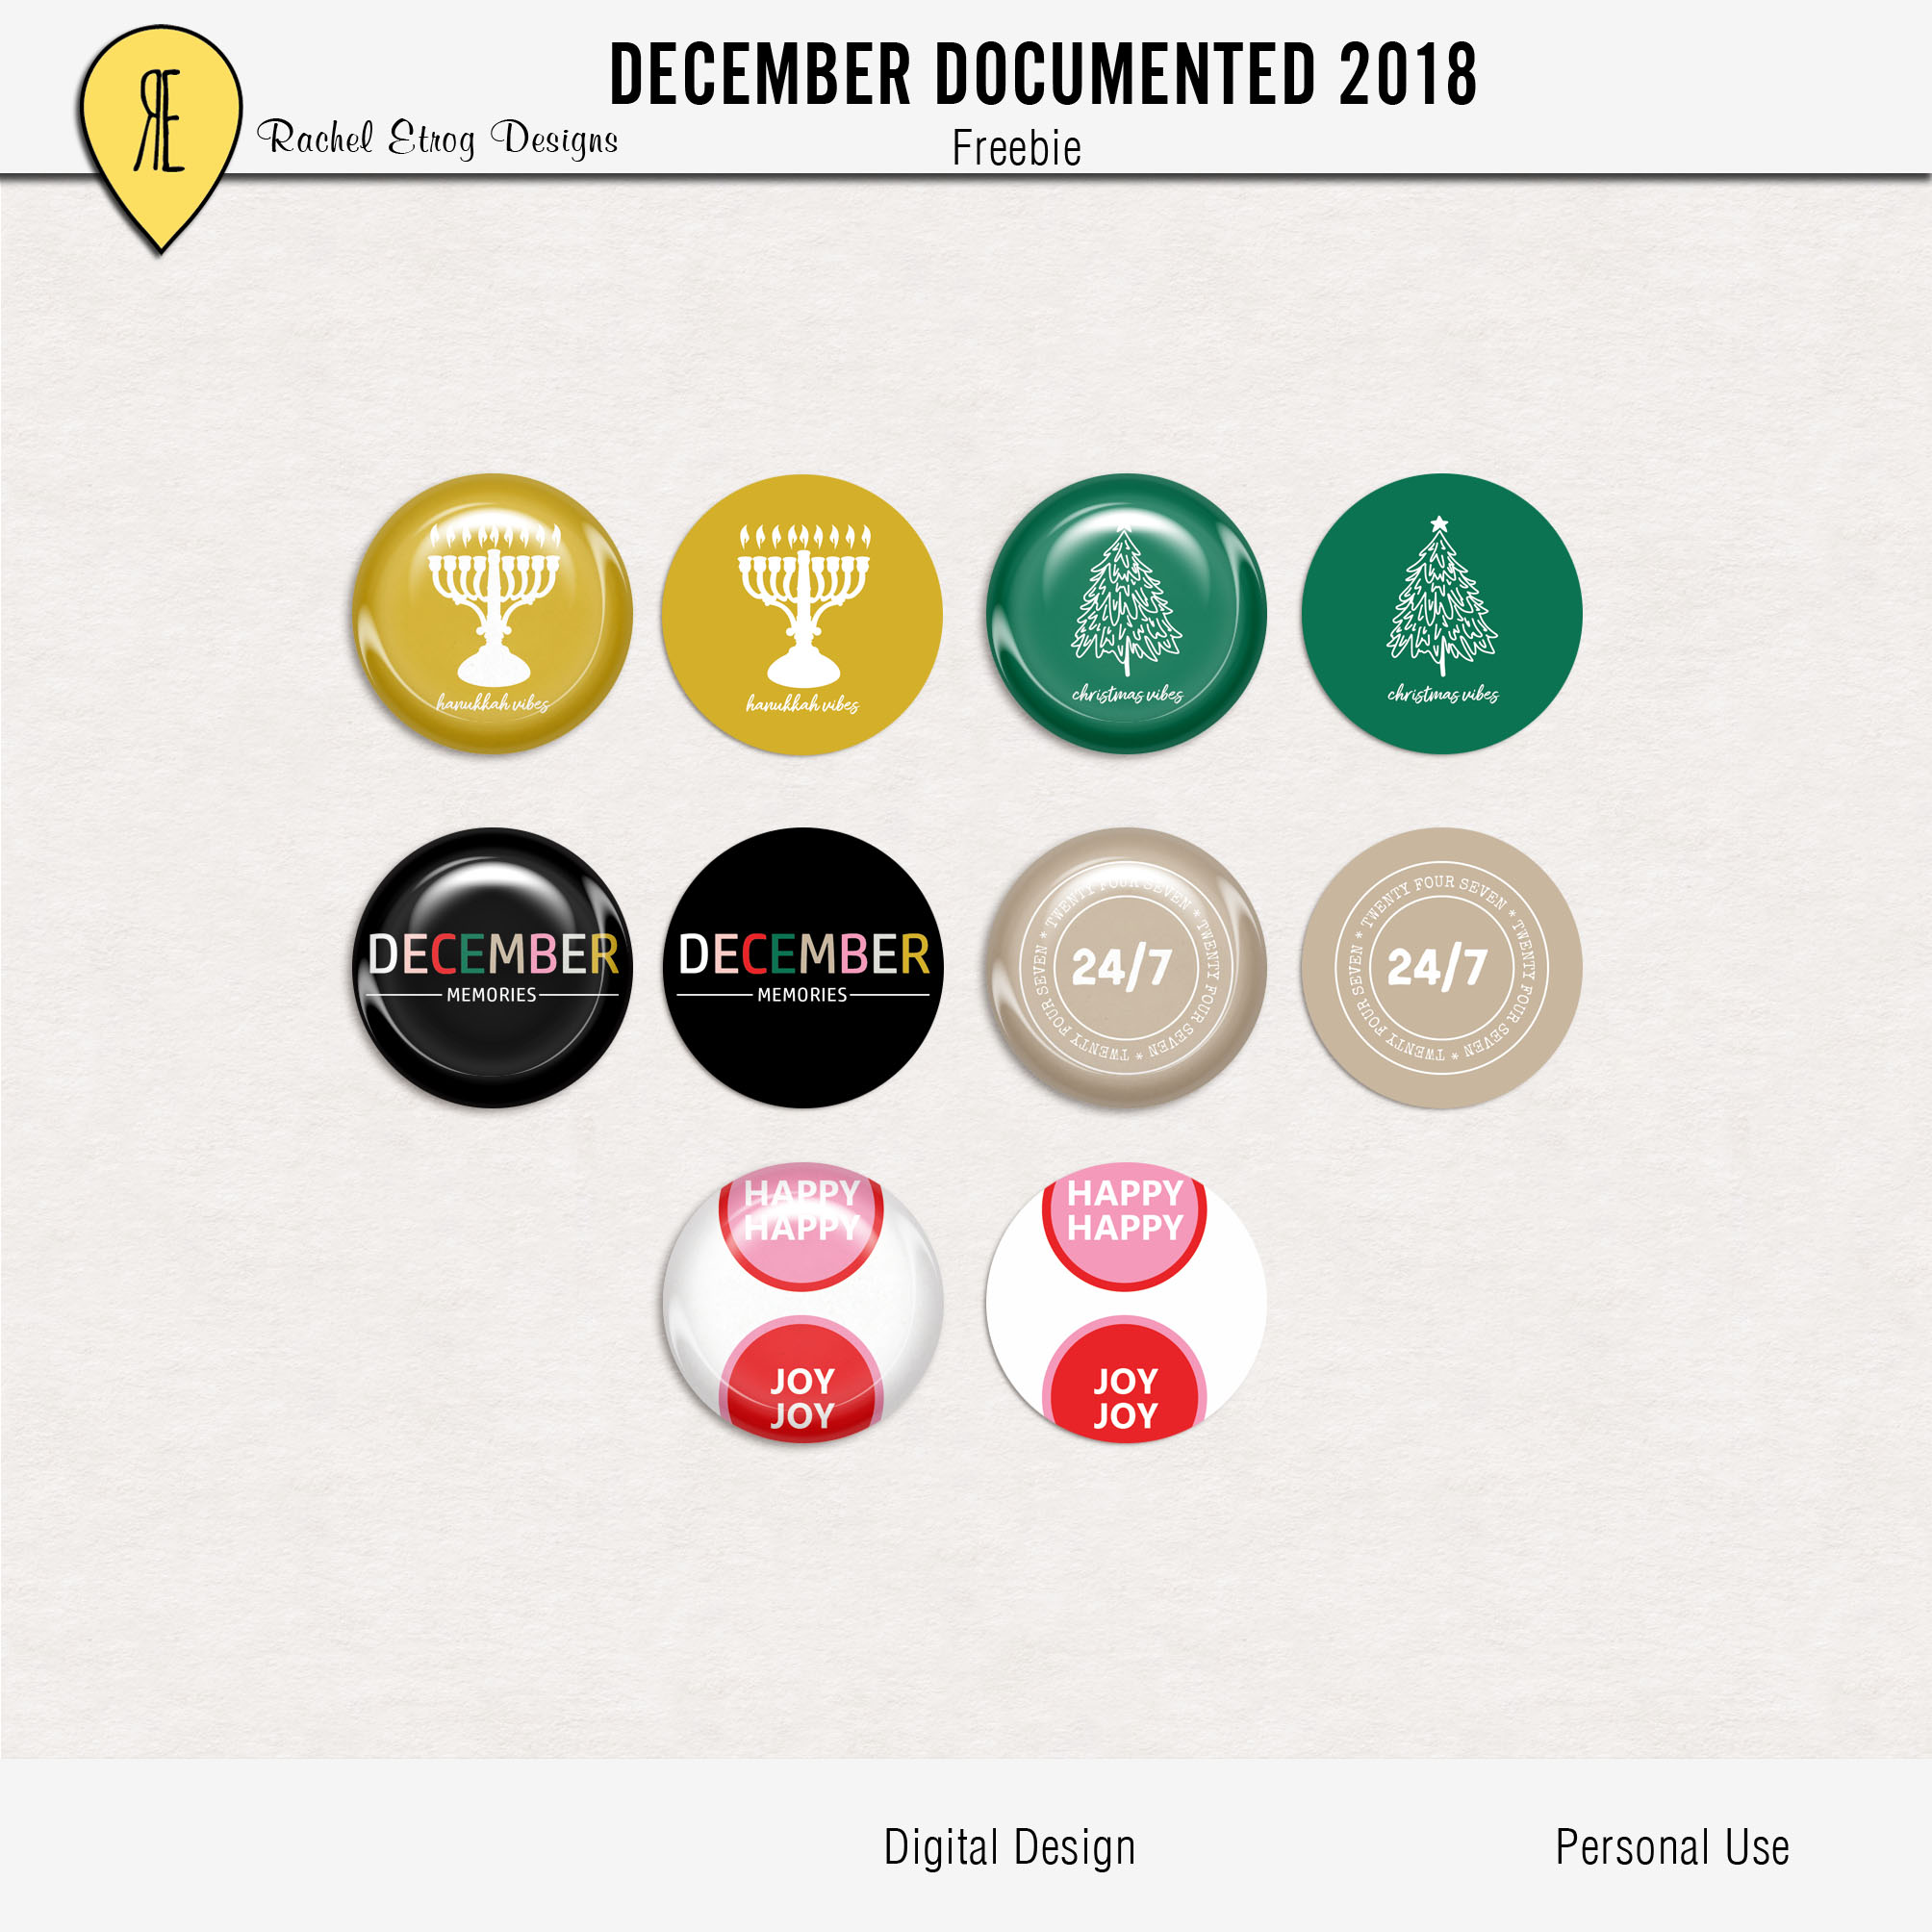 December Documented 2018 – Freebie